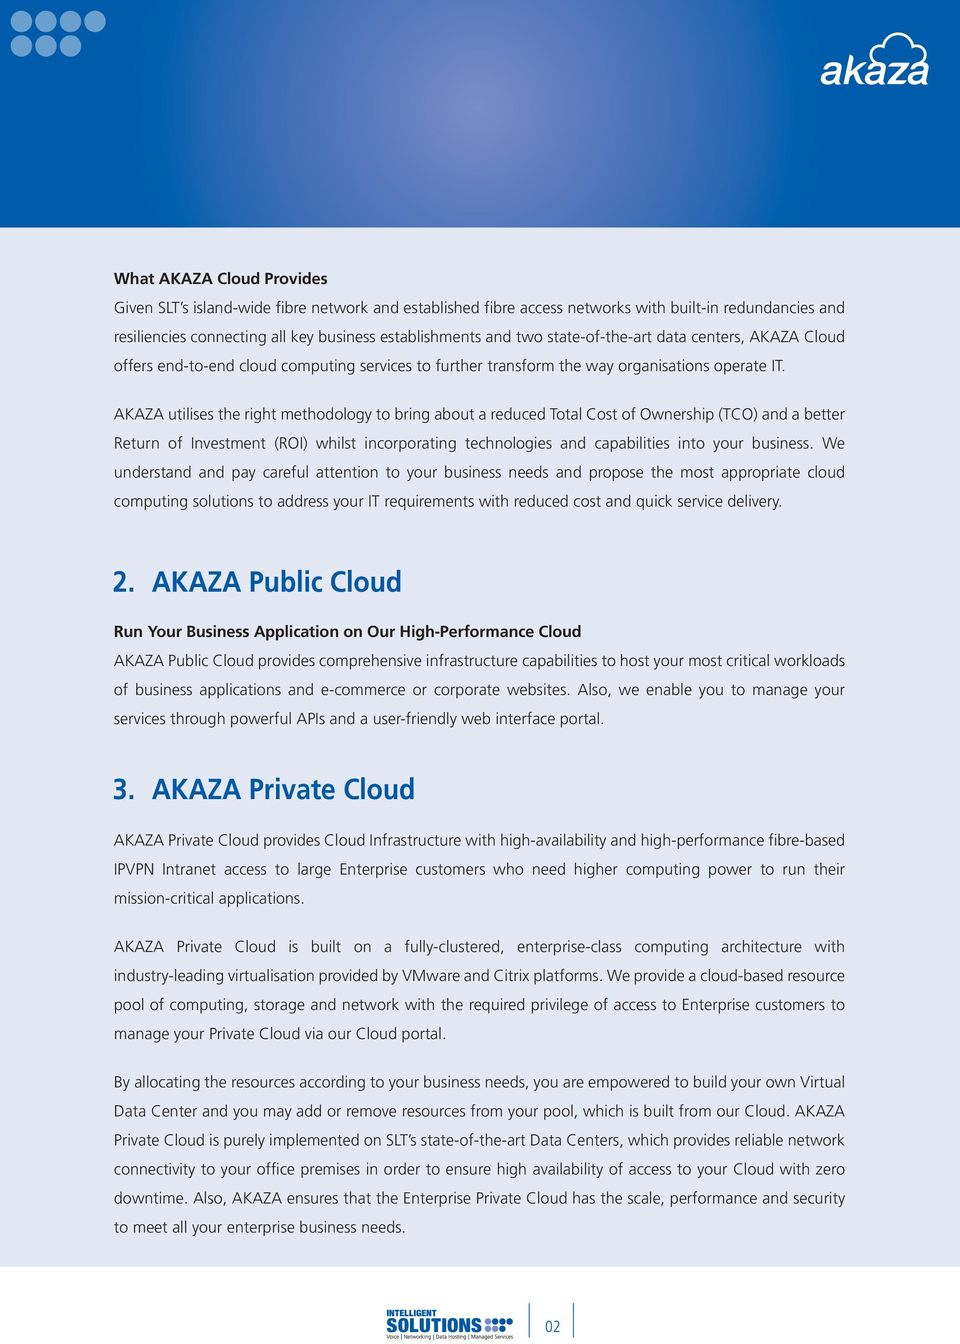 AKAZA utilises the right methodology to bring about a reduced Total Cost of Ownership (TCO) and a better Return of Investment (ROI) whilst incorporating technologies and capabilities into your